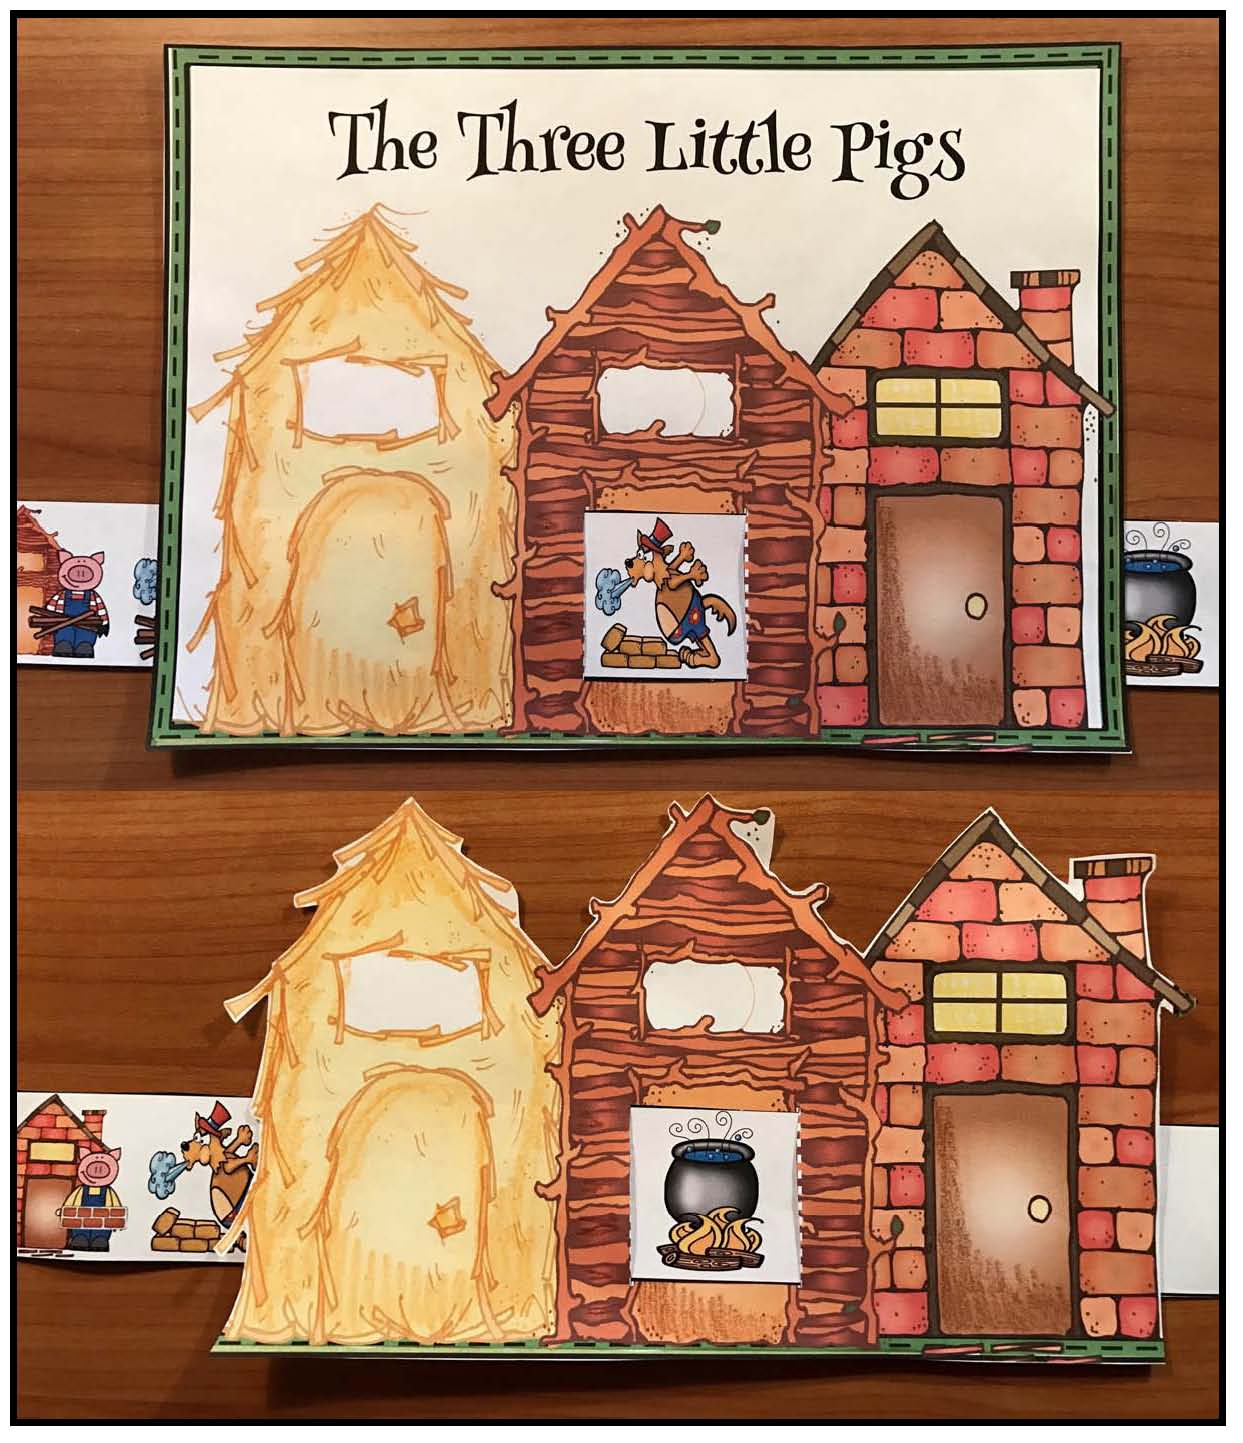 3 little pigs fairy tale activities, 3 little pigs crafts, retelling a story activities, sequencing a story activities